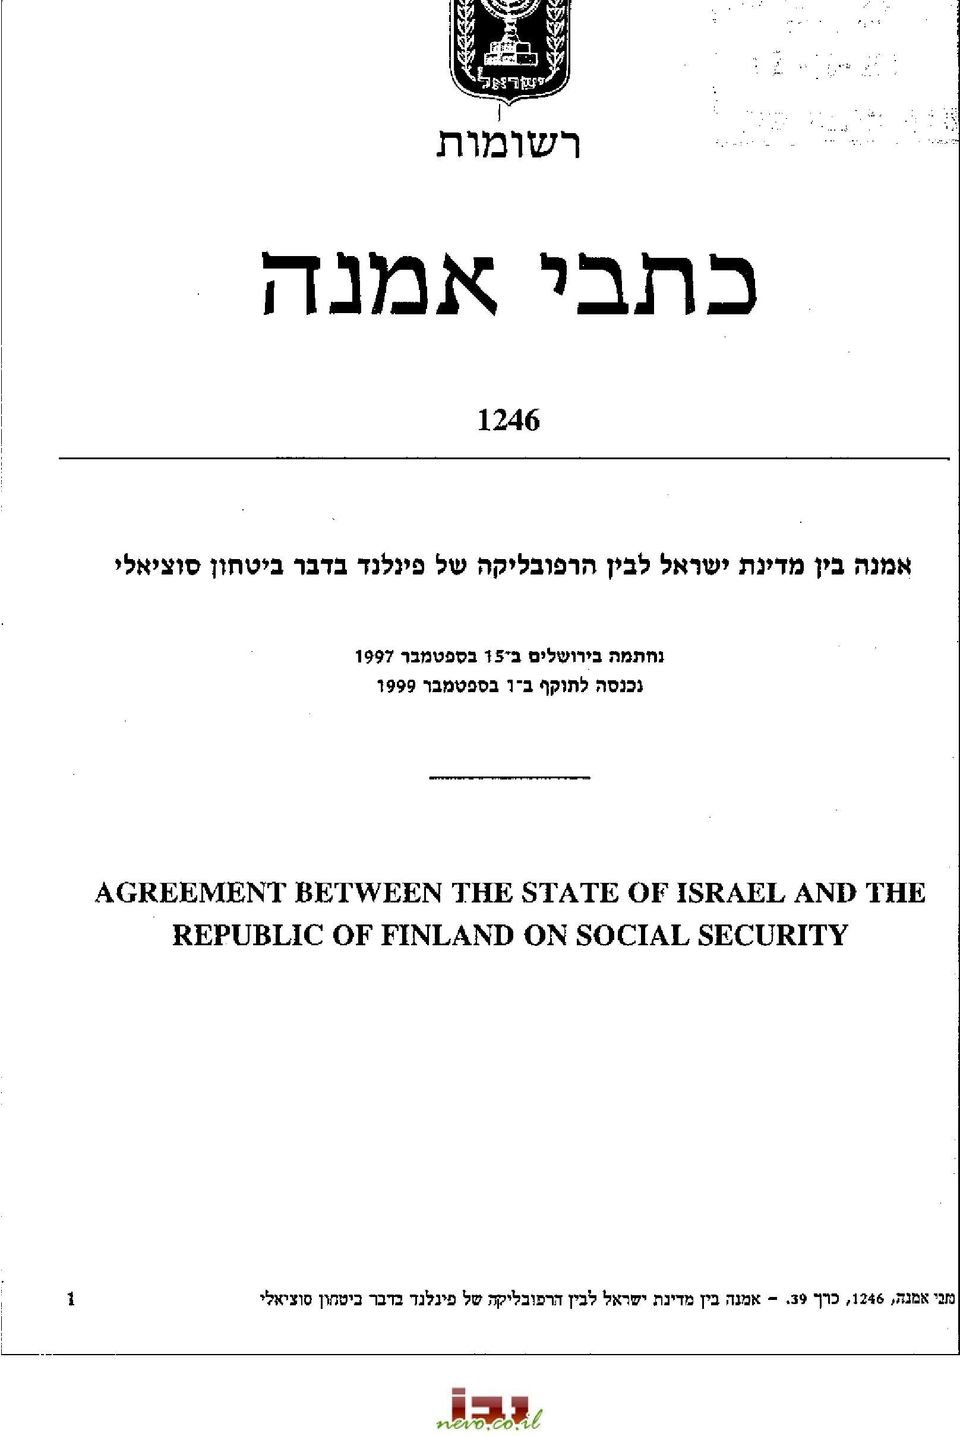 BETWEEN THE STATE OF ISRAEL AND THE REPUBLIC OF FINLAND ON SOCIAL SECURITY נתבי